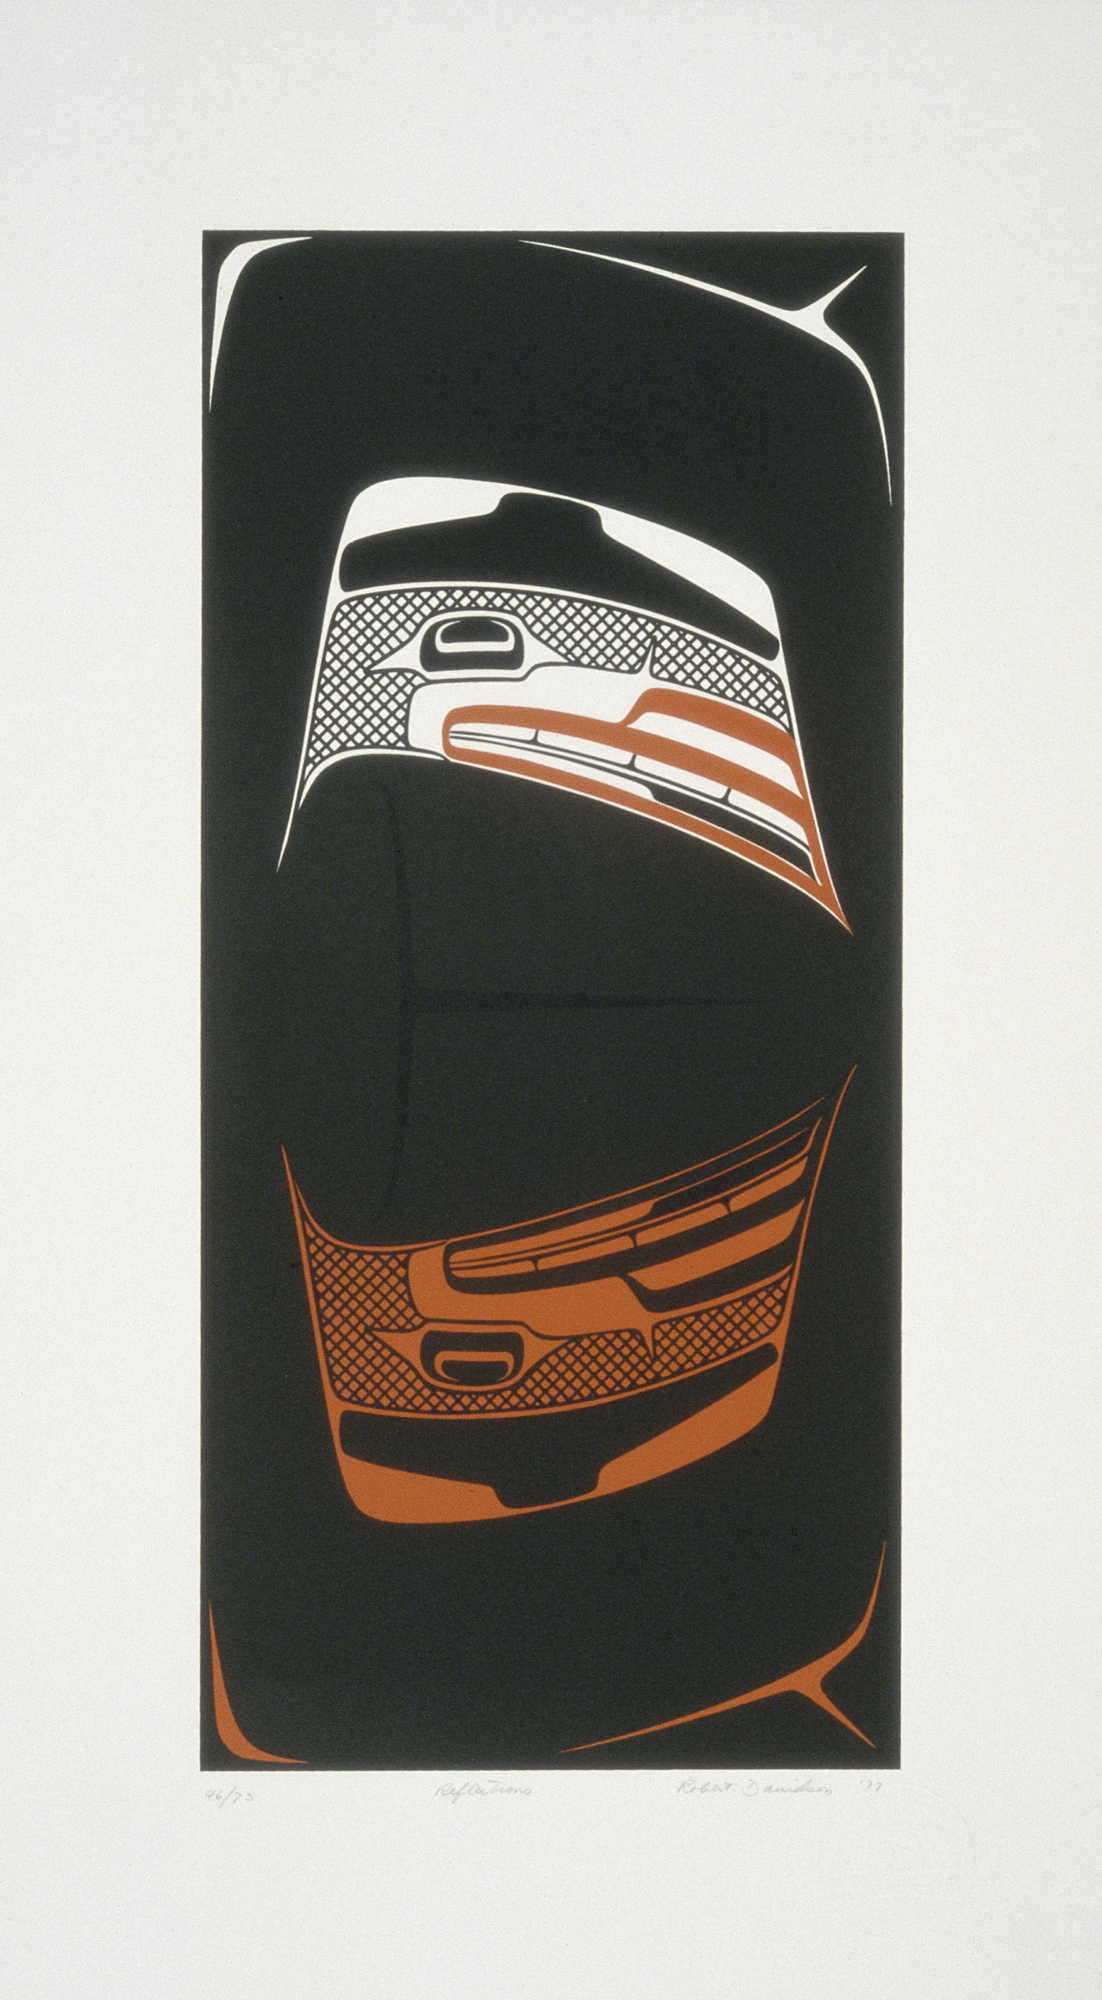 Reflections, 1977, Robert Davidson (Canadian, Haida, born 1946), ink on paper, 16 15/16 x 7 3/4 in., Seattle Art Museum, gift of Marshall and Helen Hatch, 2013.19.2, � Robert Davidson. On view starting Saturday, 16 November, in Robert Davidson: Abstract Impulse, third floor, SAM downtown.